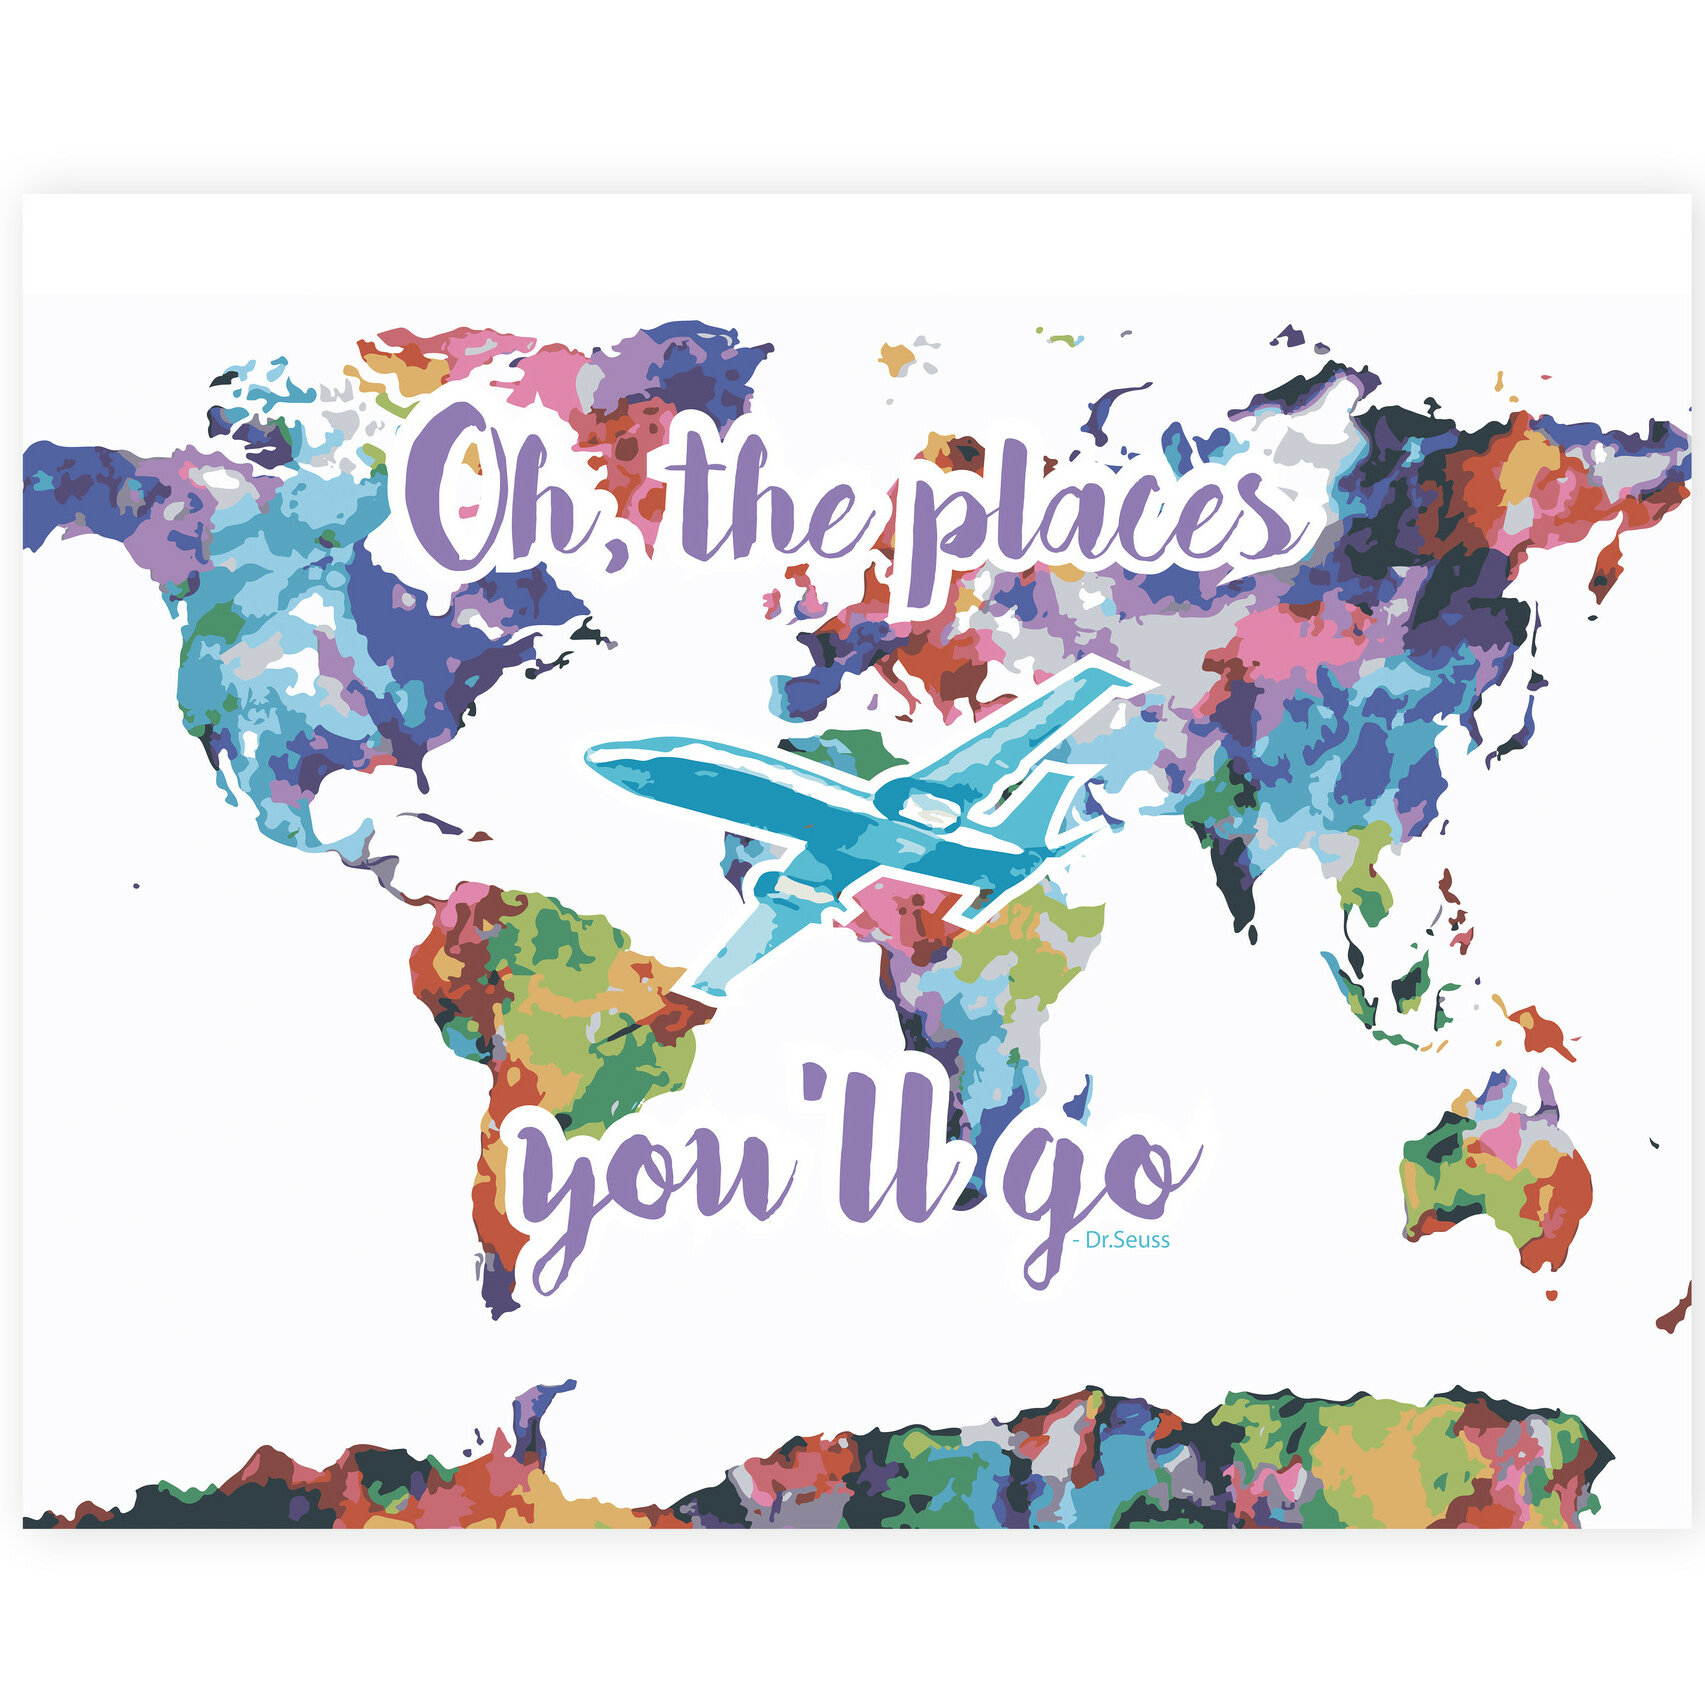 Oh The Places You'll Go Map Watercolor Canvas Art Map Canvas Art on map curtains, cool world map art, map of western united states, gold glass art, map drawing art, united states map art, map of eastern united states, map color art, map framed art, brown abstract art, map home decor, map modge podge art, map mediterranean, map design, diy map art, map art prints, map pencil art, map border art, map wall decals, map food art,